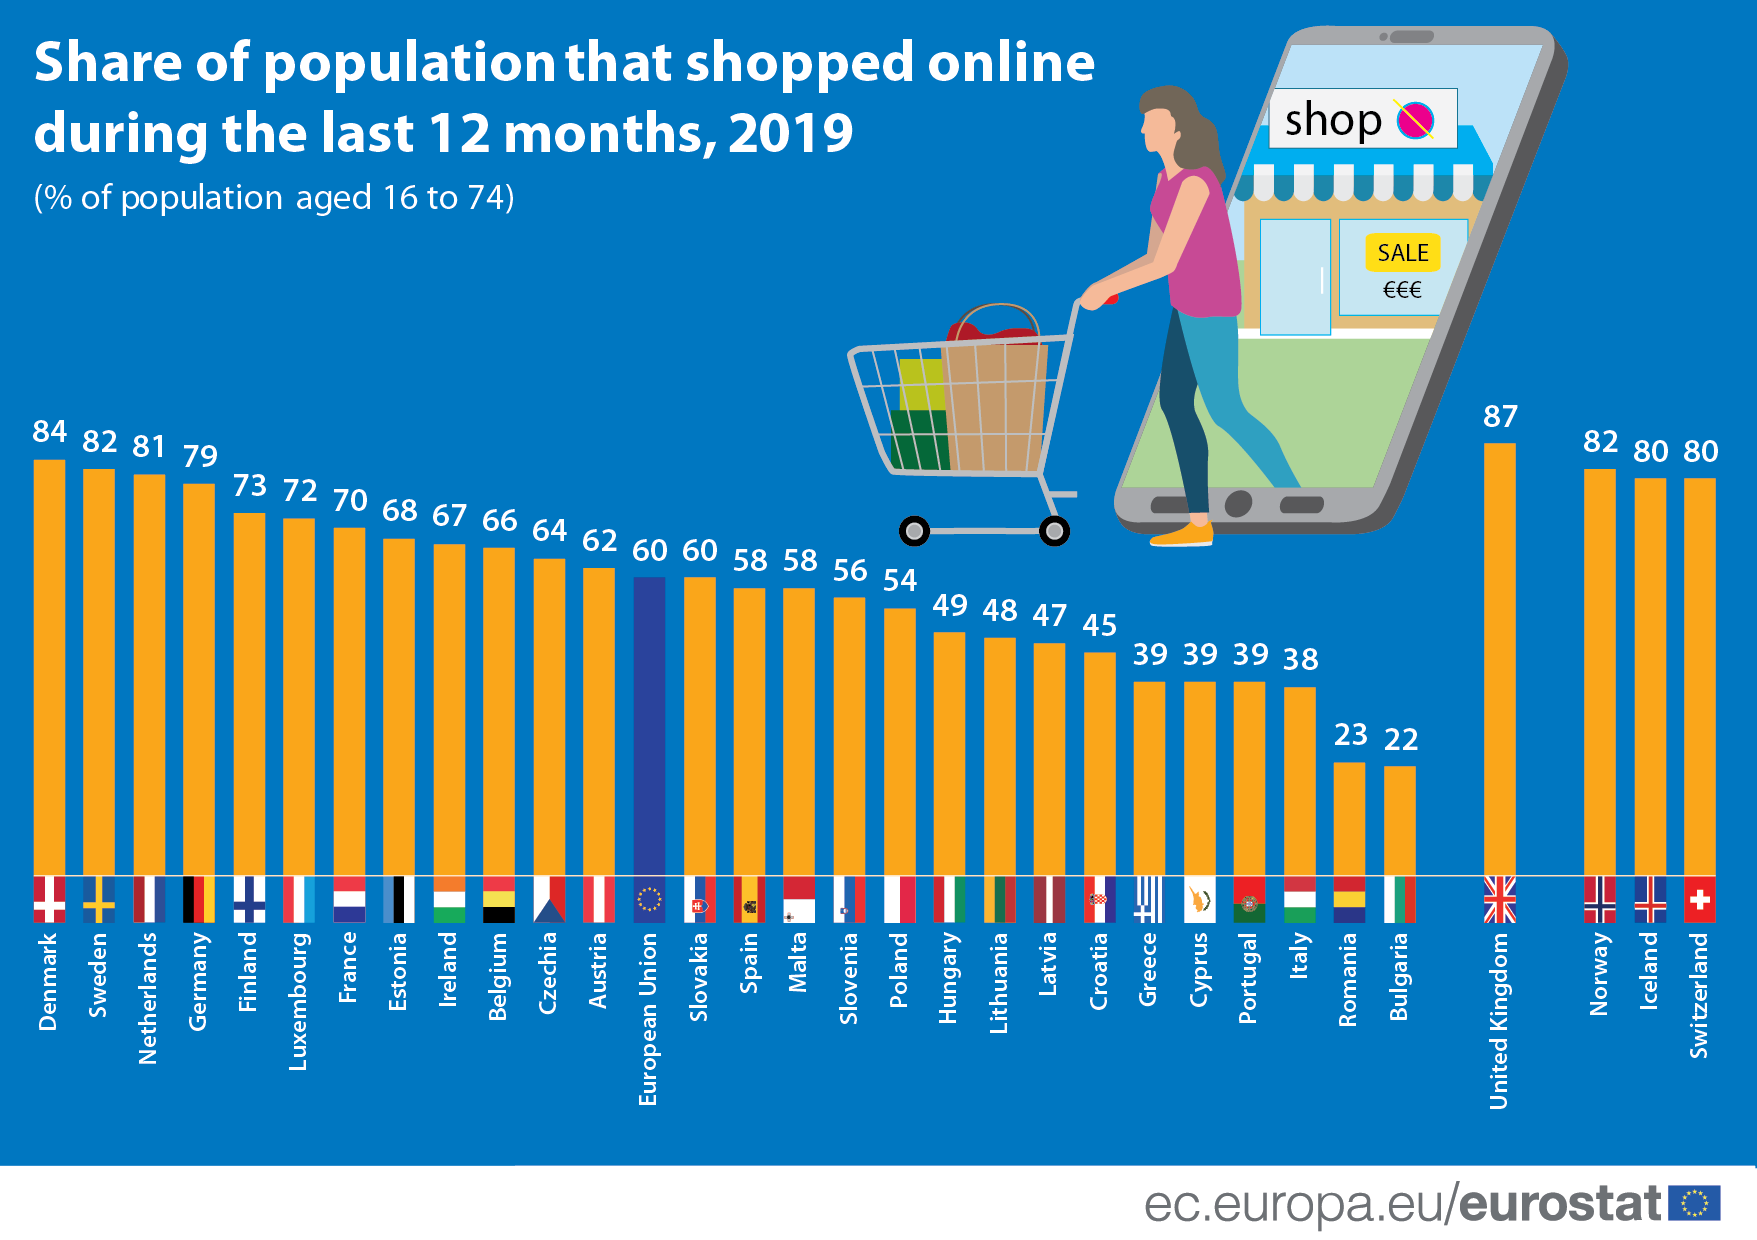 Infographic: Share of population that shopped online during the last 12 months, 2019